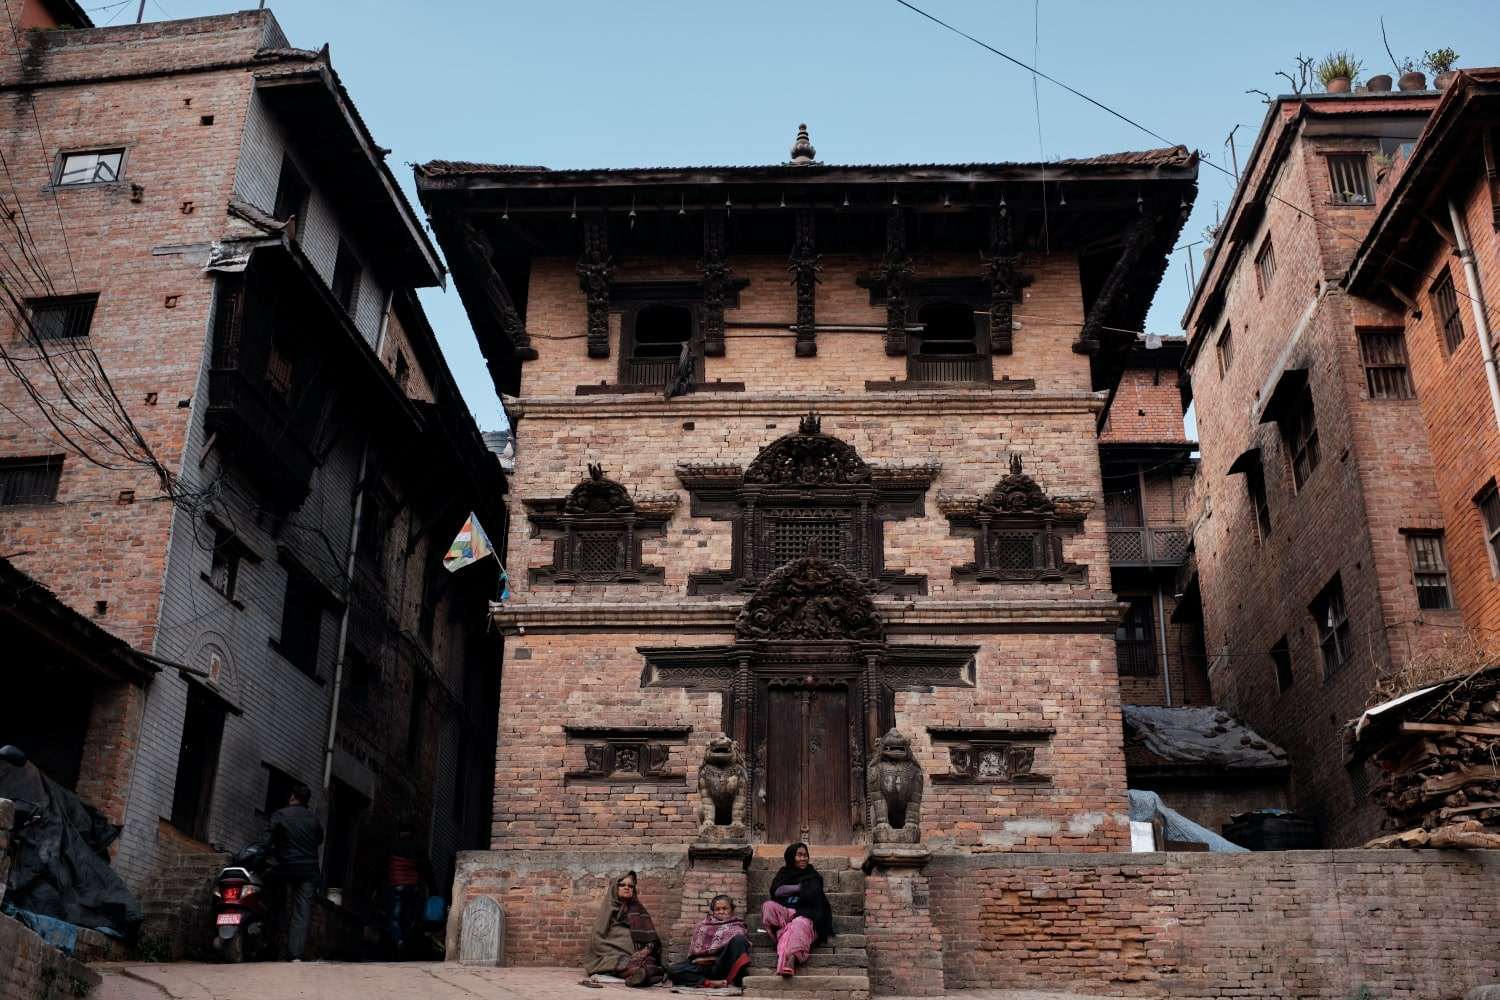 Women sitting outside a building in Bhaktapur